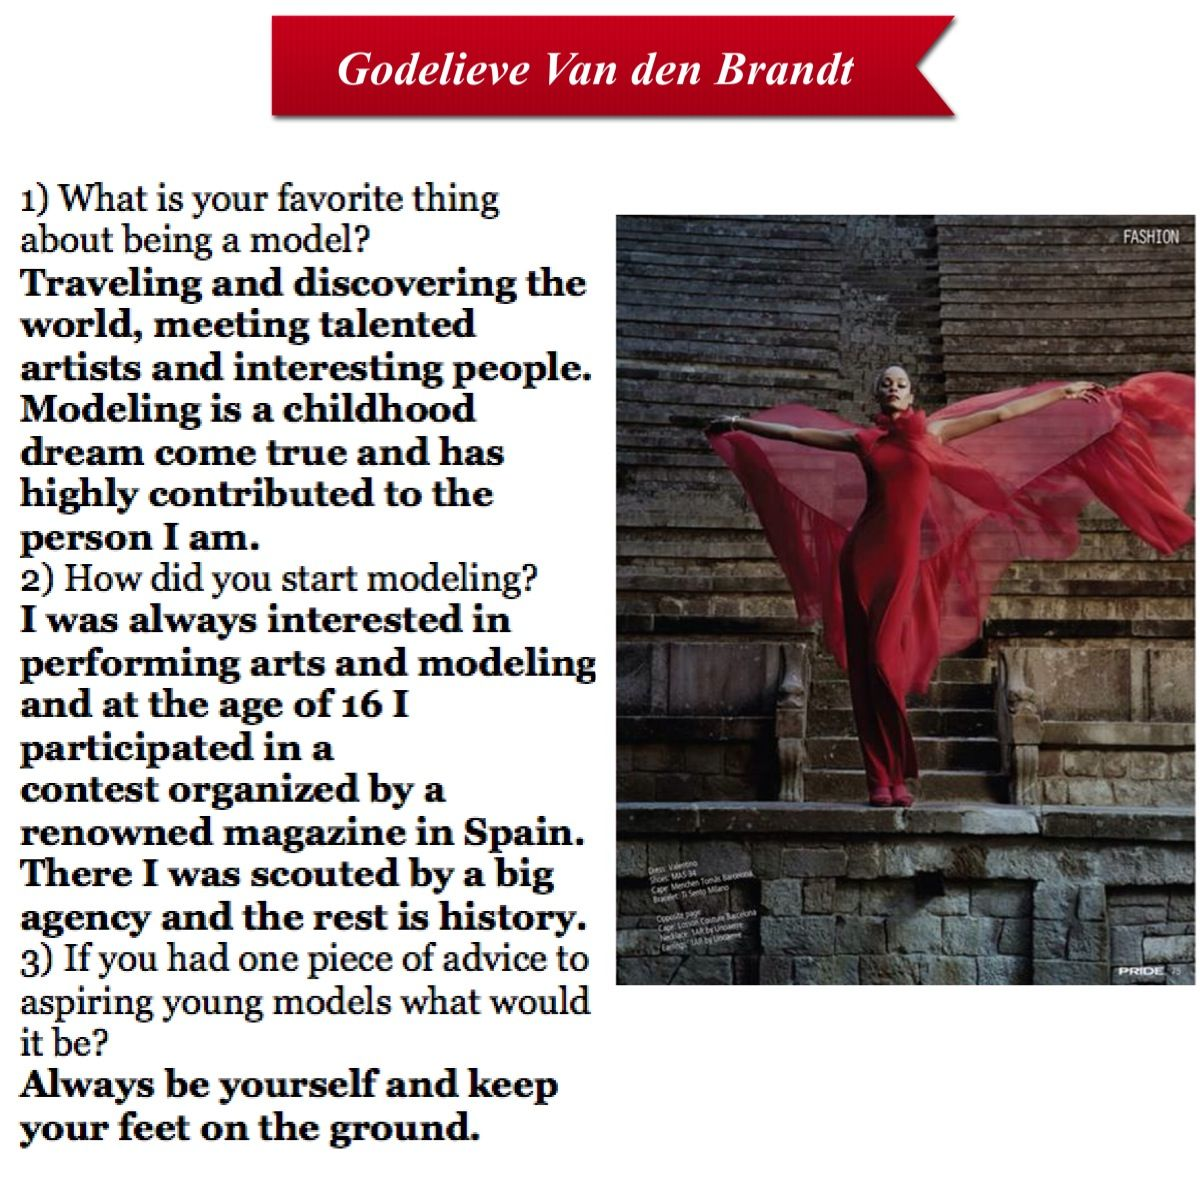 ModelHub is proud to present an interview by one of our very own creatives, Godelieve Van der Berndt! A top model from Spain, Godelieve has been featured in magazines, campaigns and many fashion shows all over the world! We asked her a couple questions hoping to get some insight into the life of a top model! Take a look!